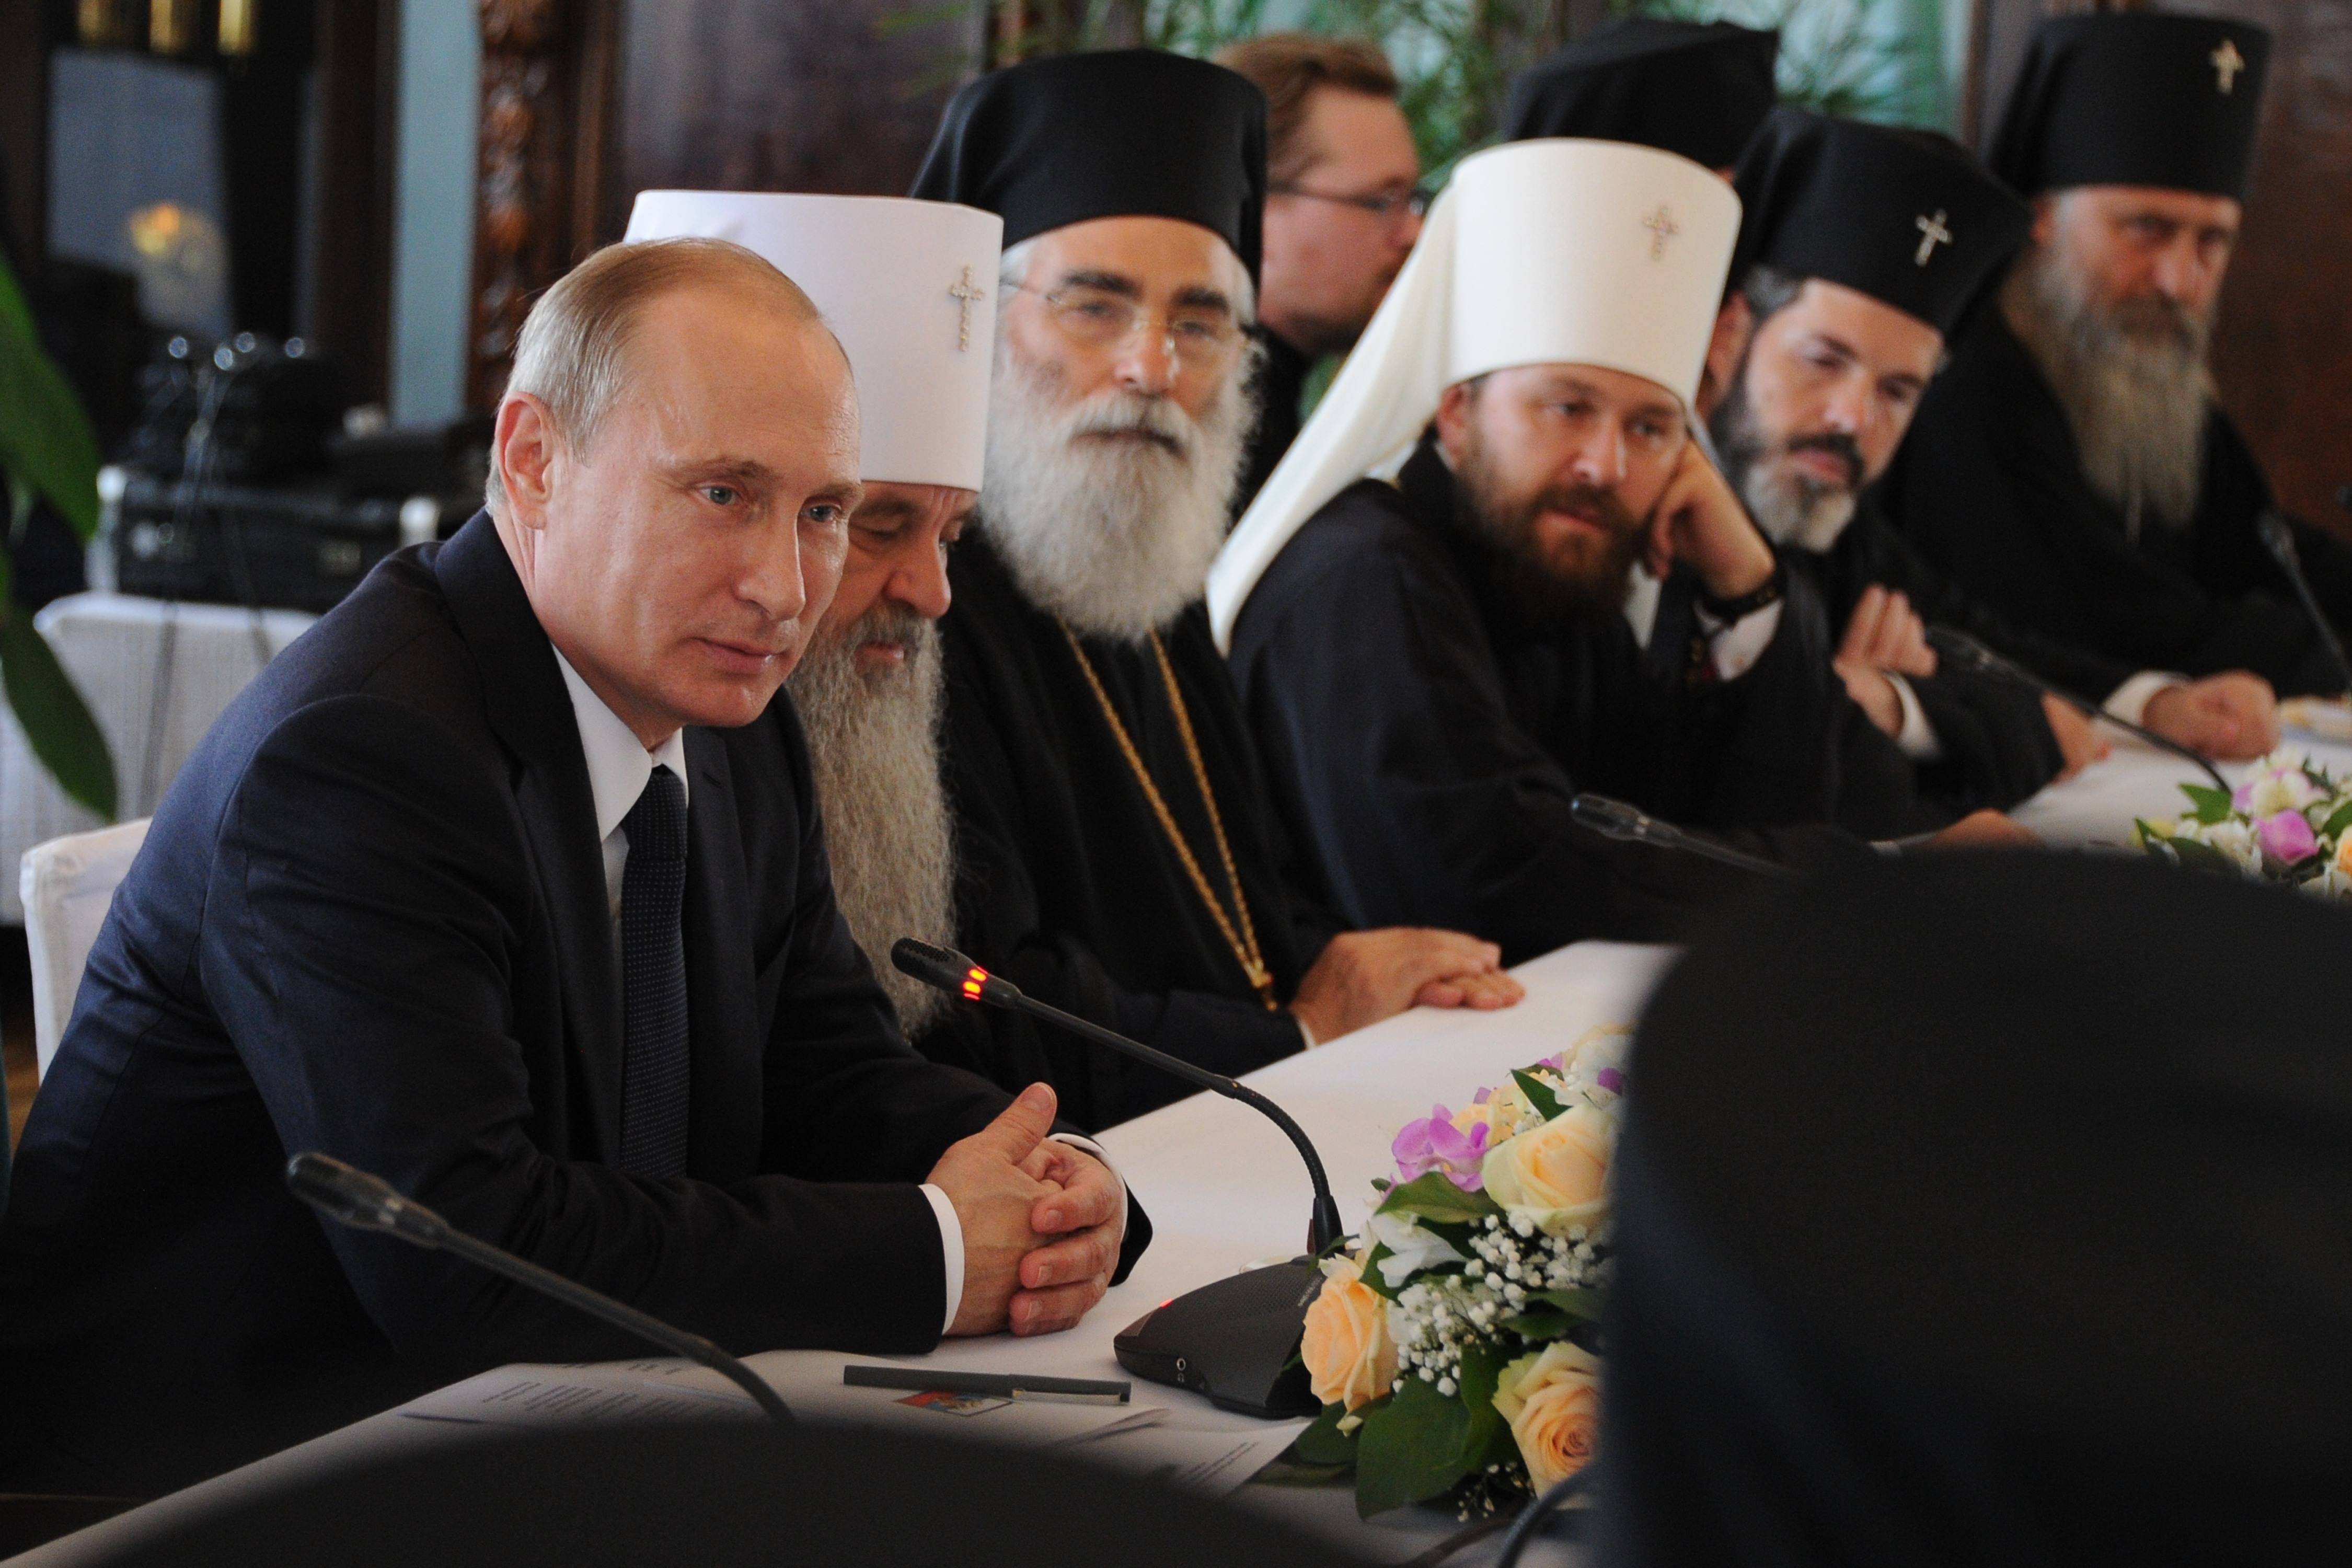 Russian President Vladimir Putin, left, attends celebrations marking the 700th anniversary of St. Sergius of Radonezh in the Trinity St. Sergius monastery in Sergiyev Posad, northeast of Moscow.